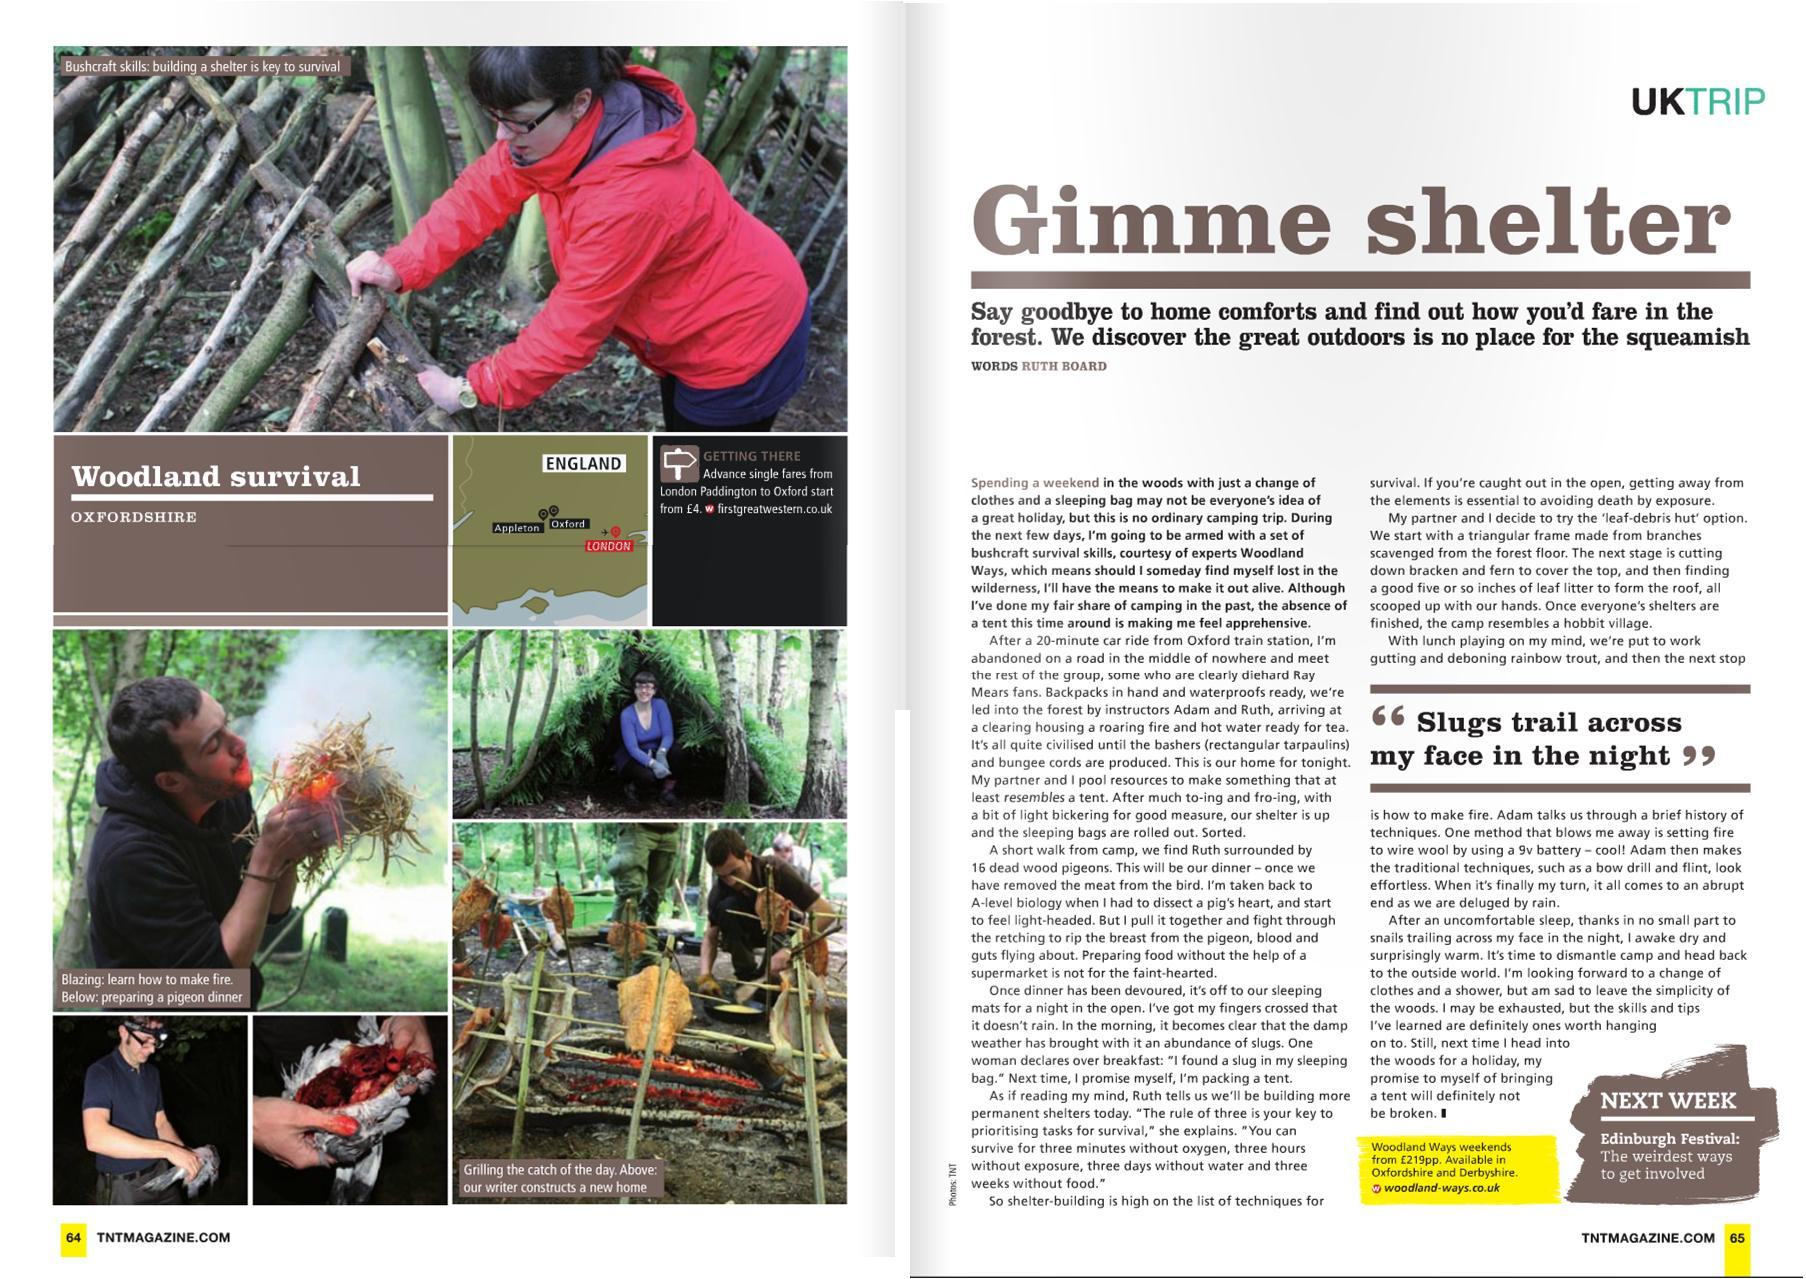 Woodland ways surival weekend courses appears in the press, this time in TNT magazine